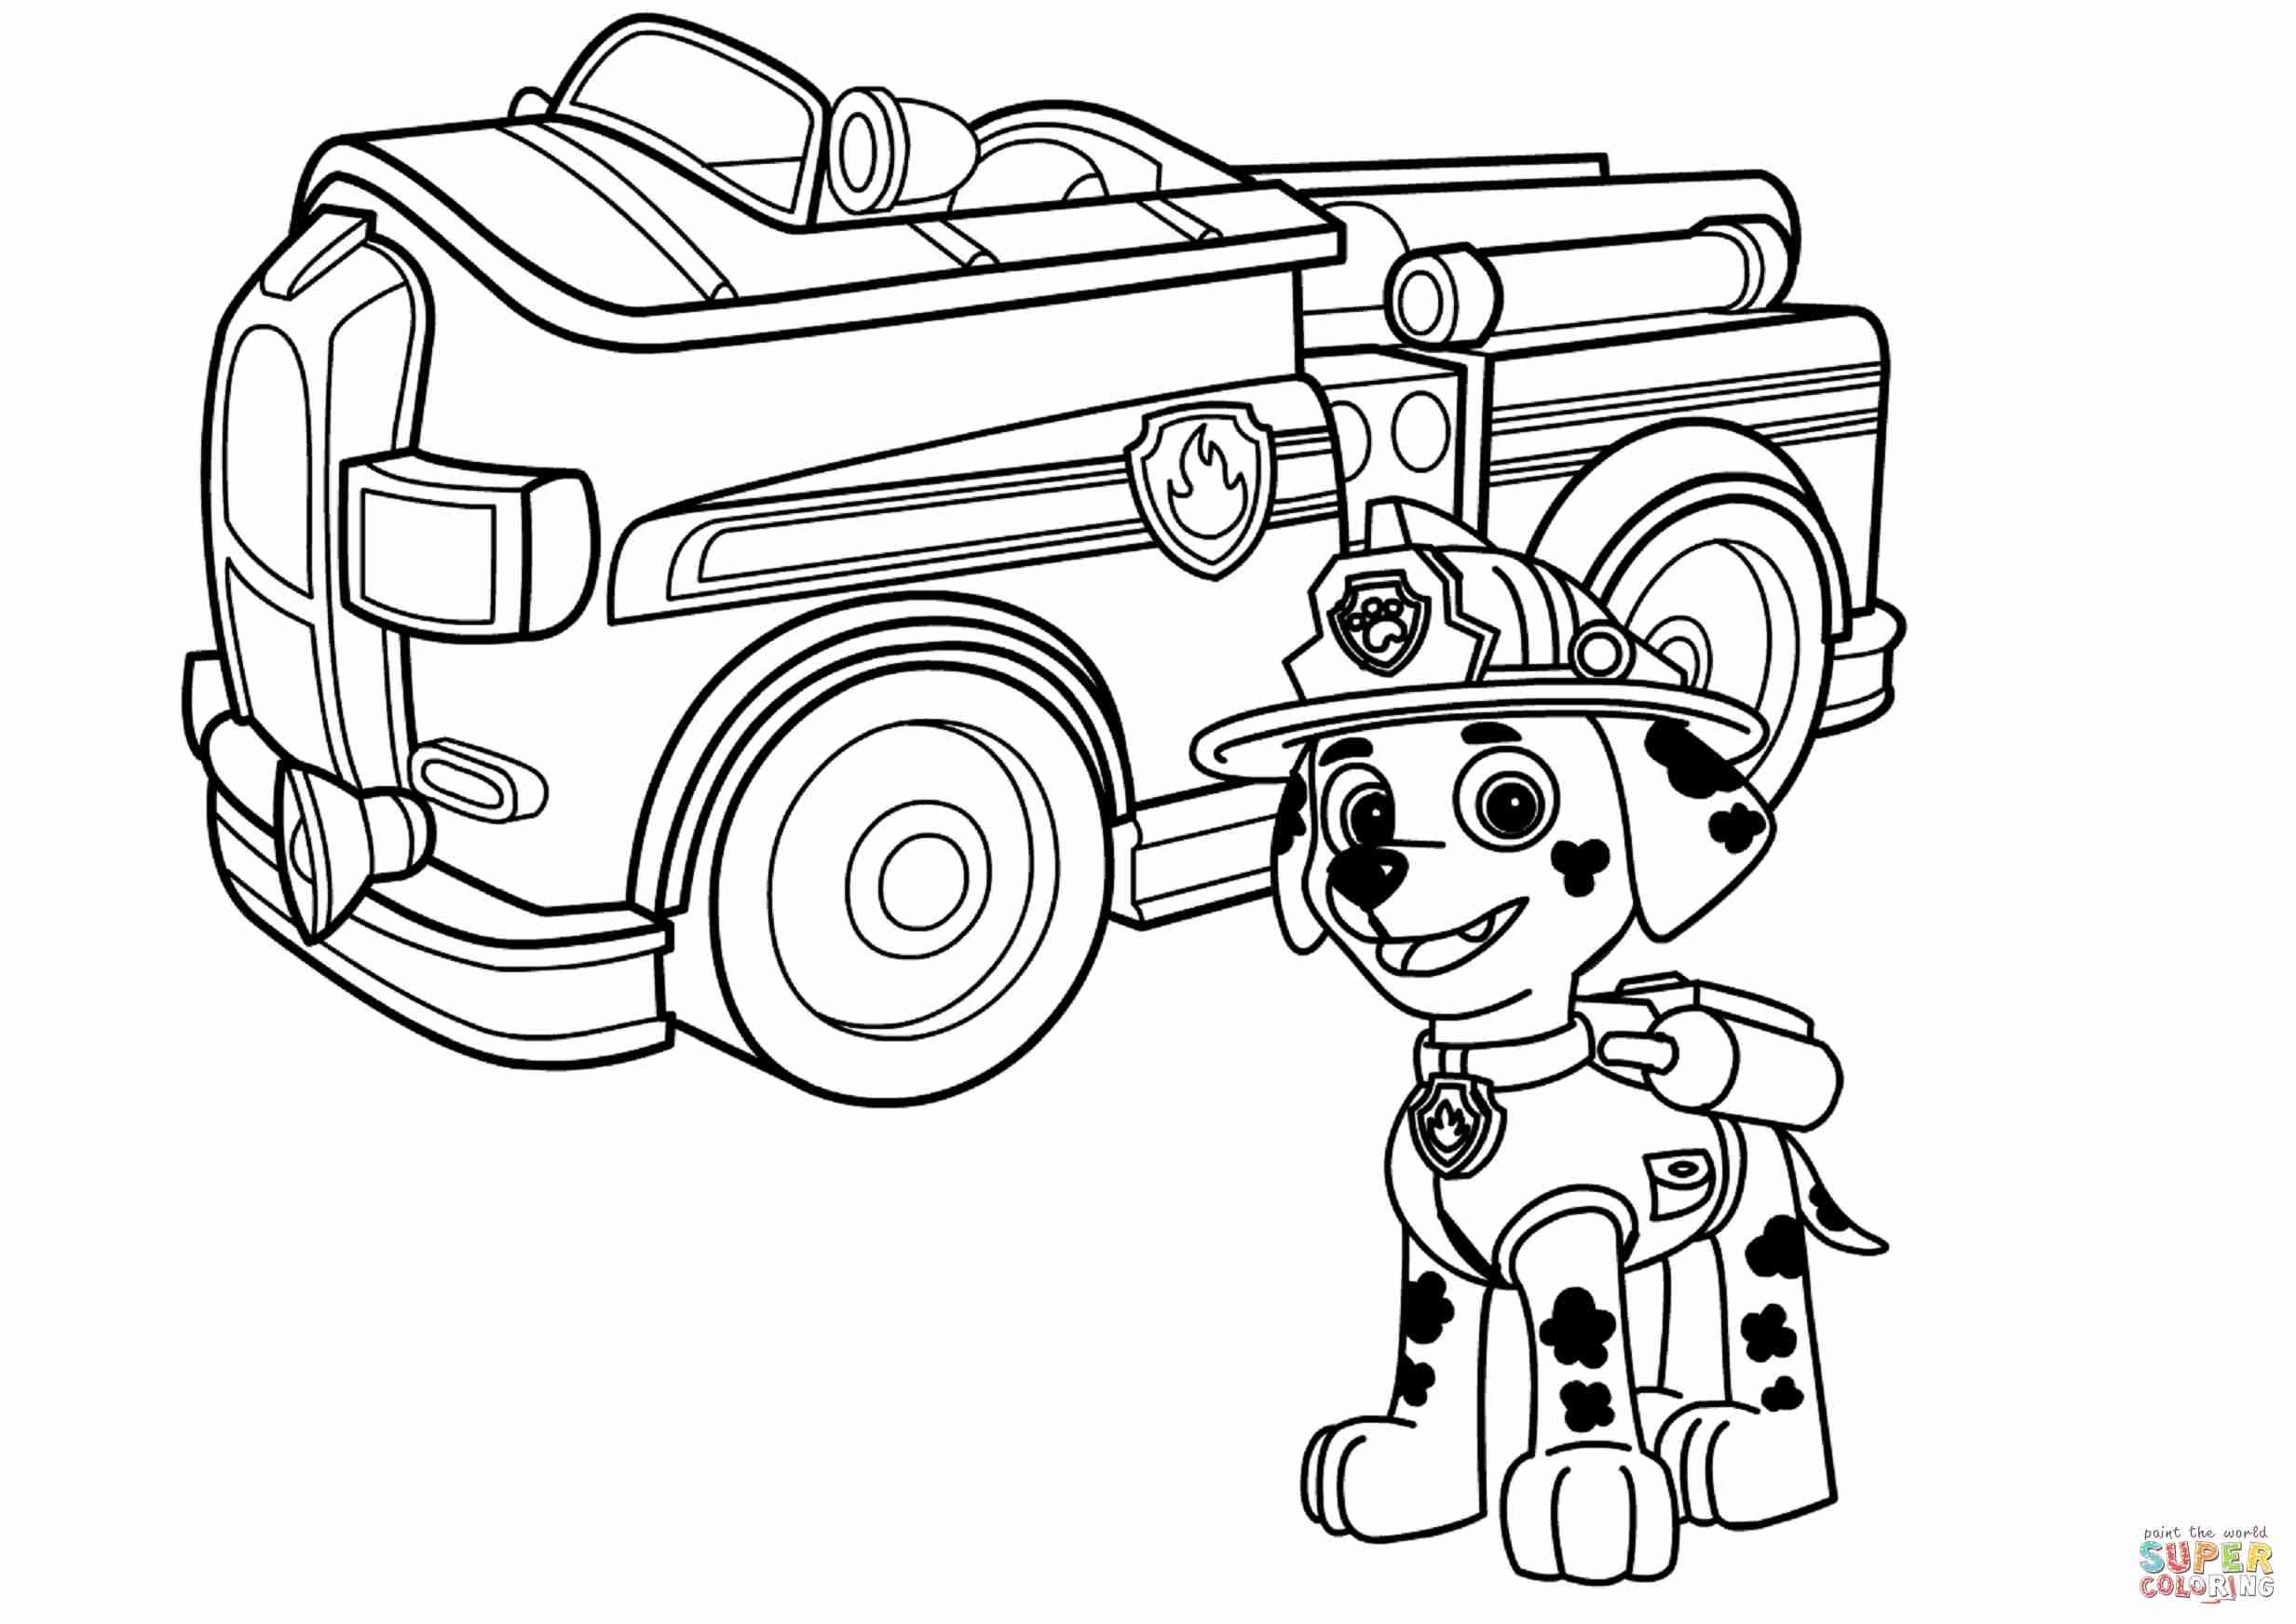 lego fire truck coloring lego fire truck coloring page coloring pages printablecom lego truck fire coloring